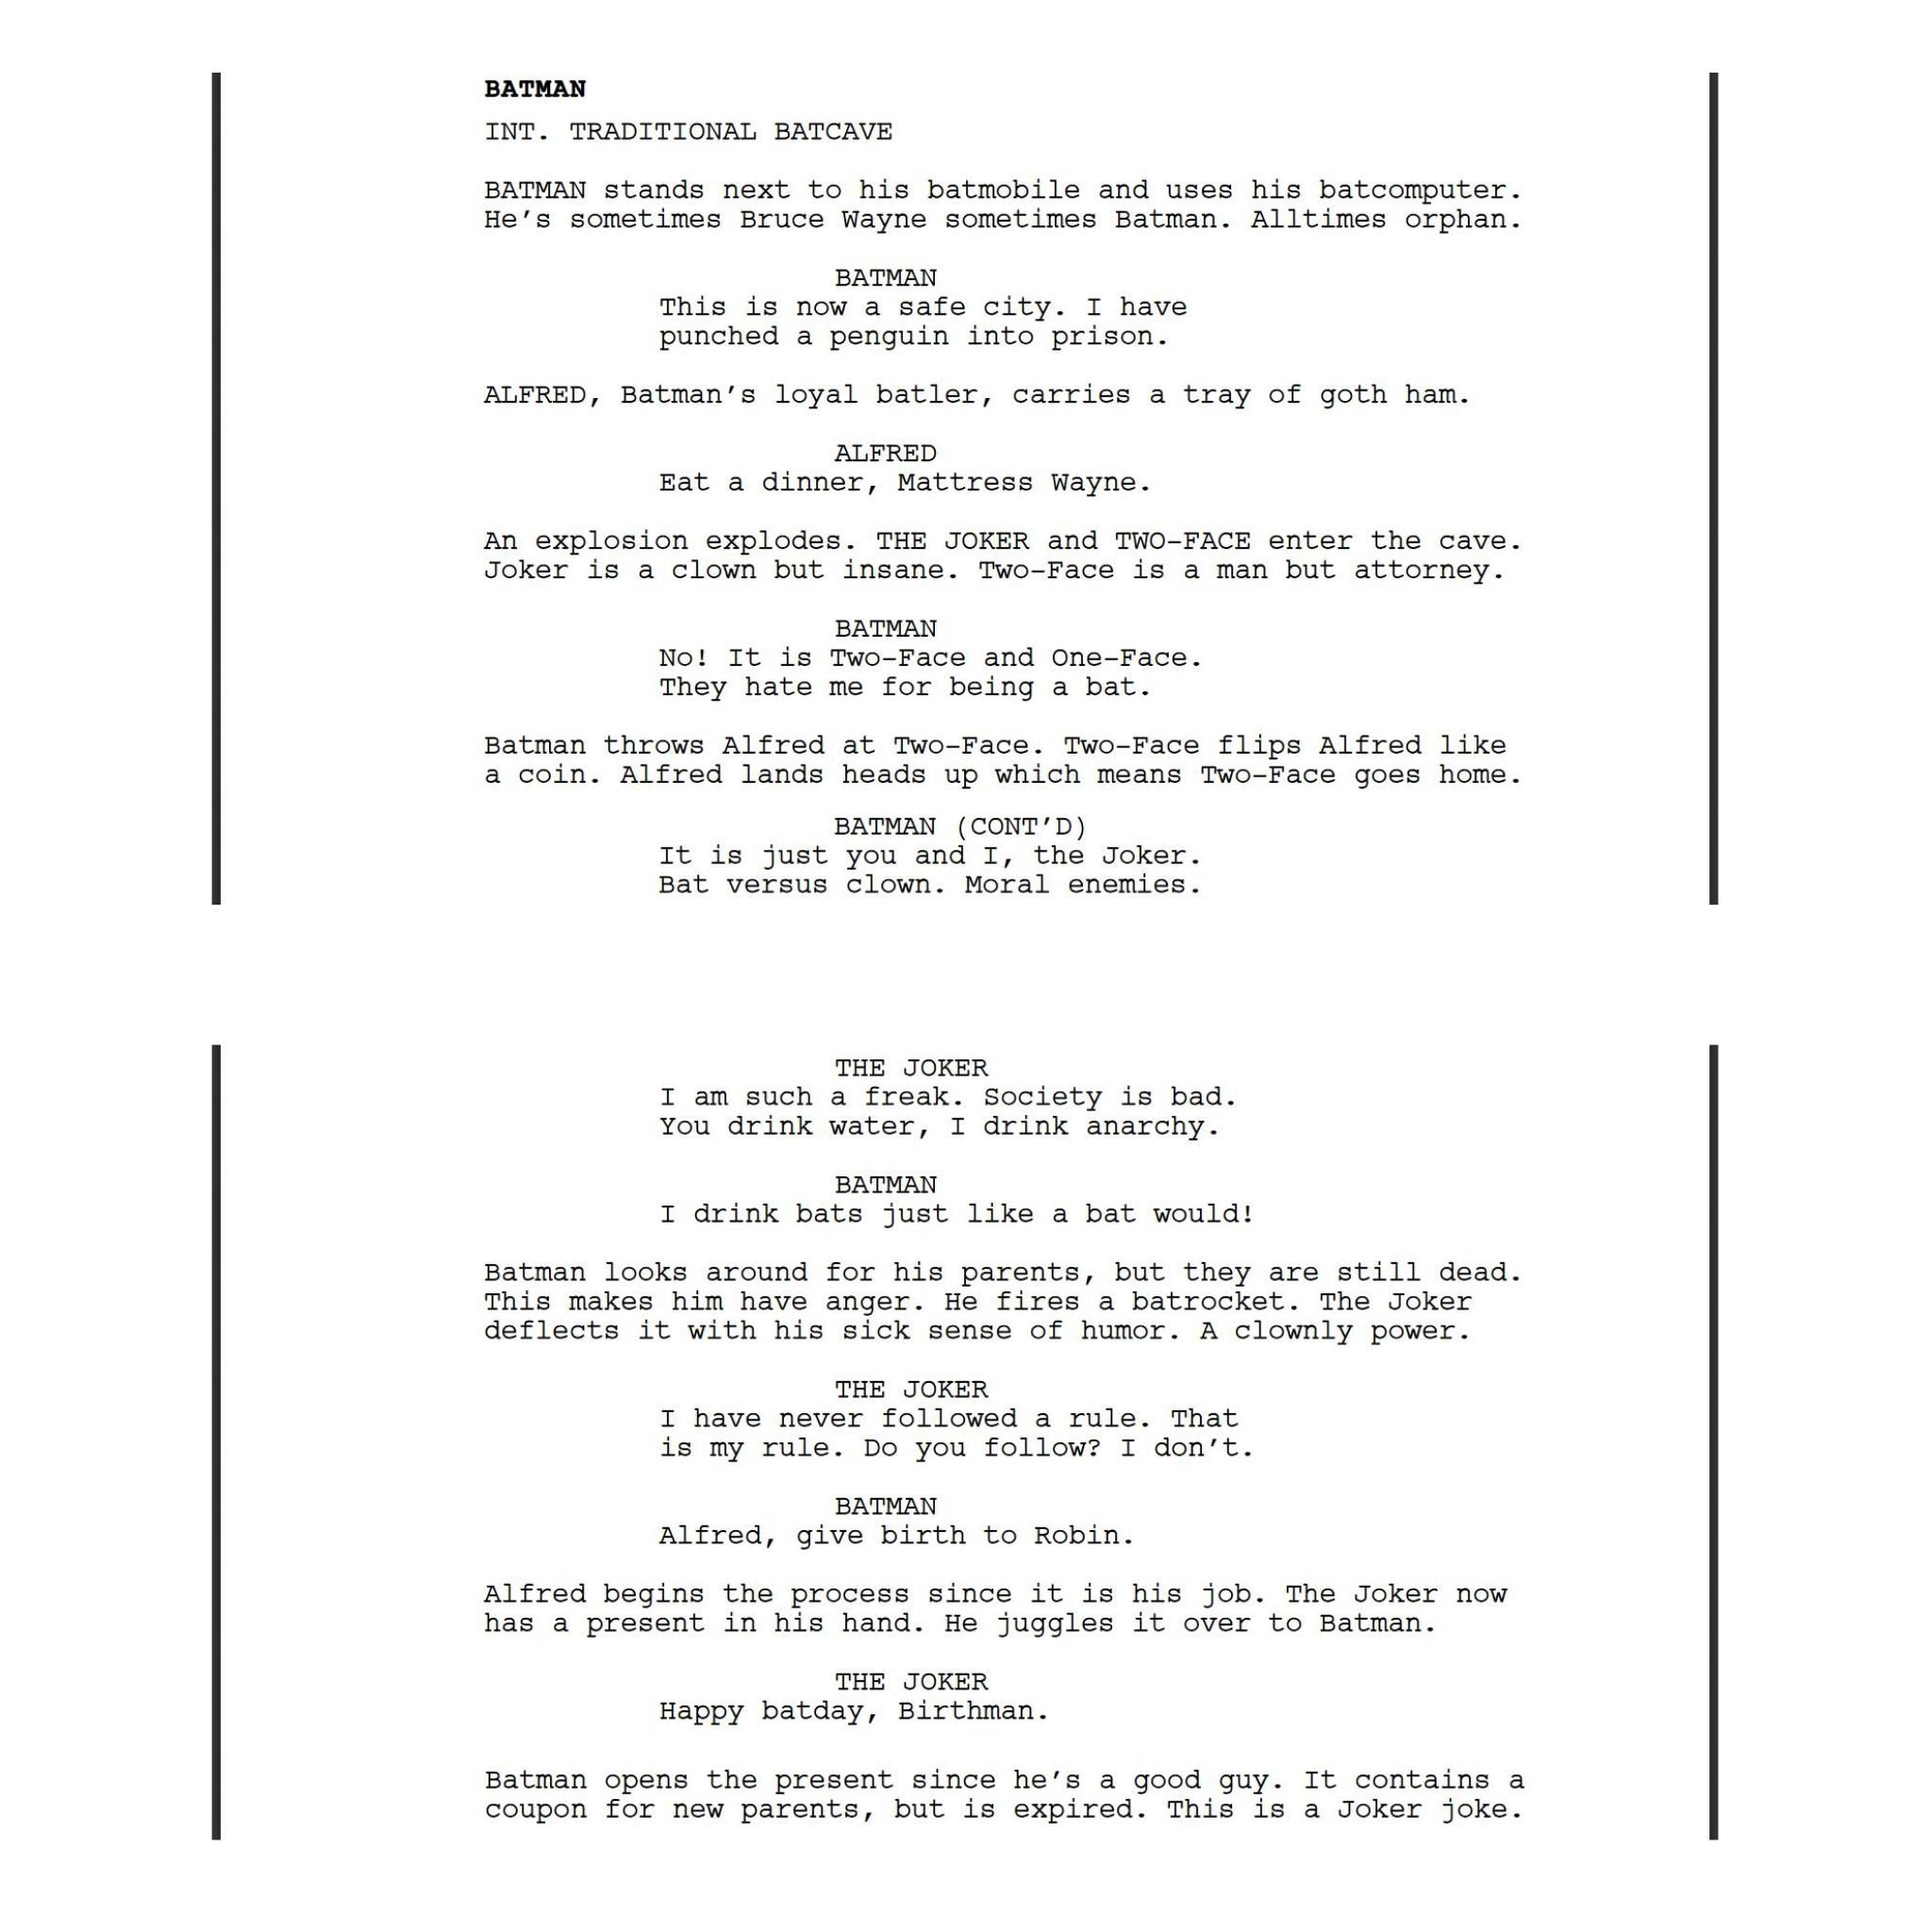 Keaton Patti forced a bot to watch over 1,000 hours of Batman movies and then asked it to write a Batman movie of its own. Here is the first page.